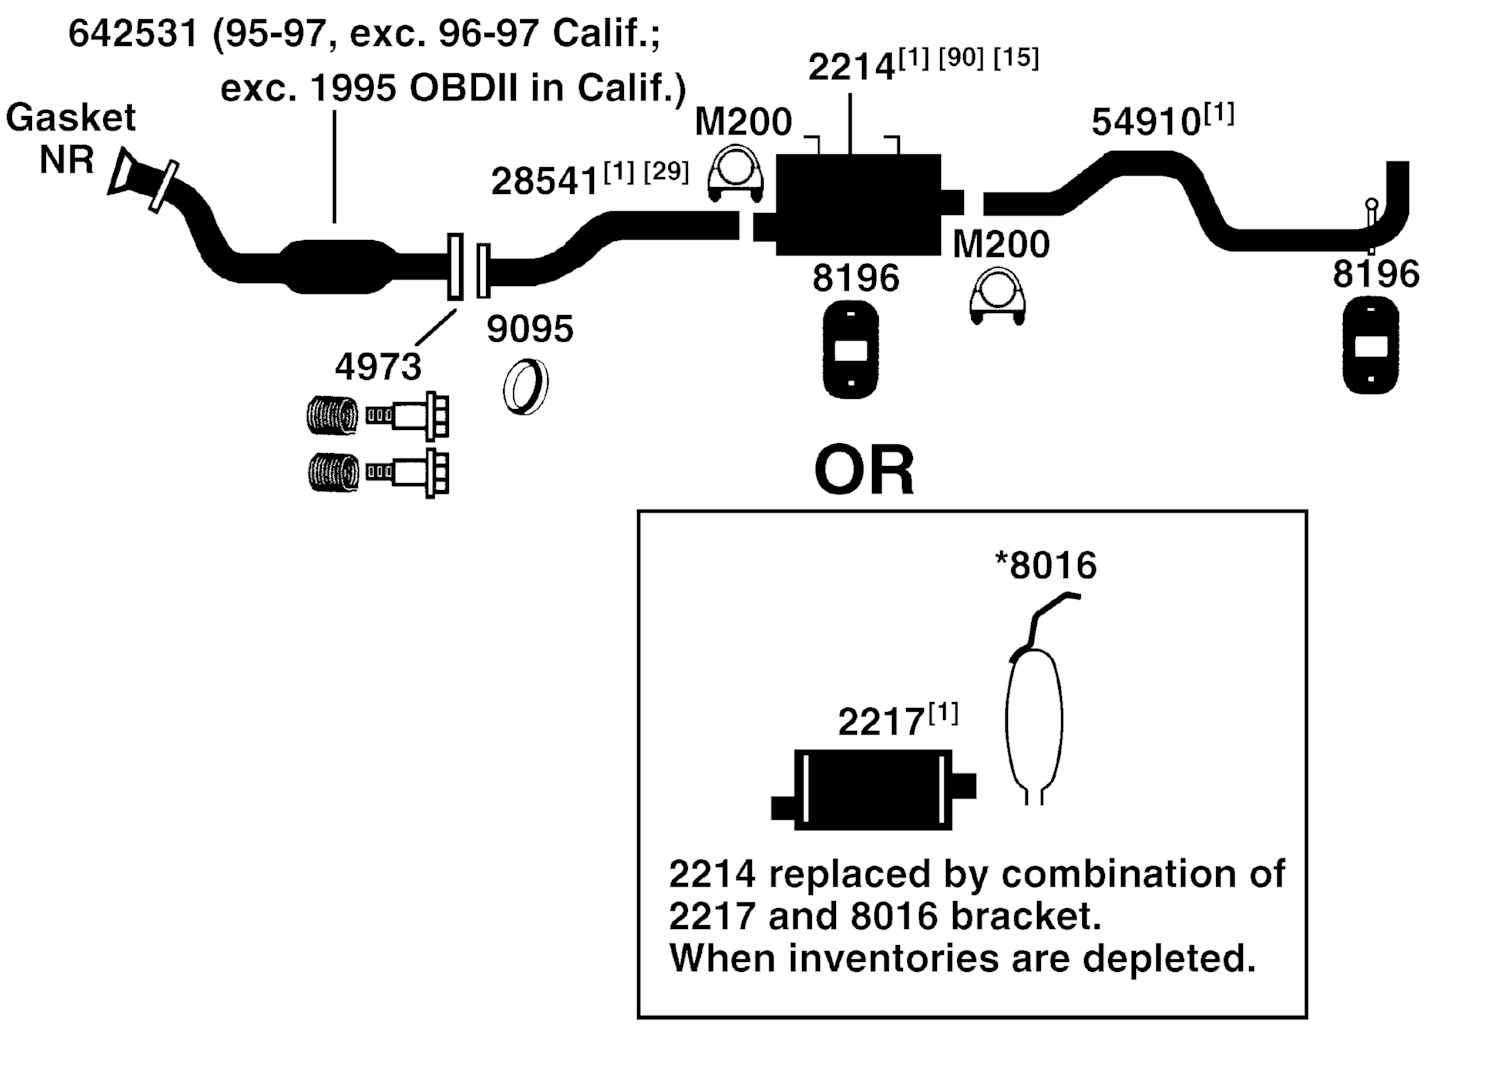 Ford Ranger 2_3 Engine Diagram http://www.bestvalueautoparts.com/Replacement_Parts/FORD/RANGER/Illust_Ref_c_Exhaust.html